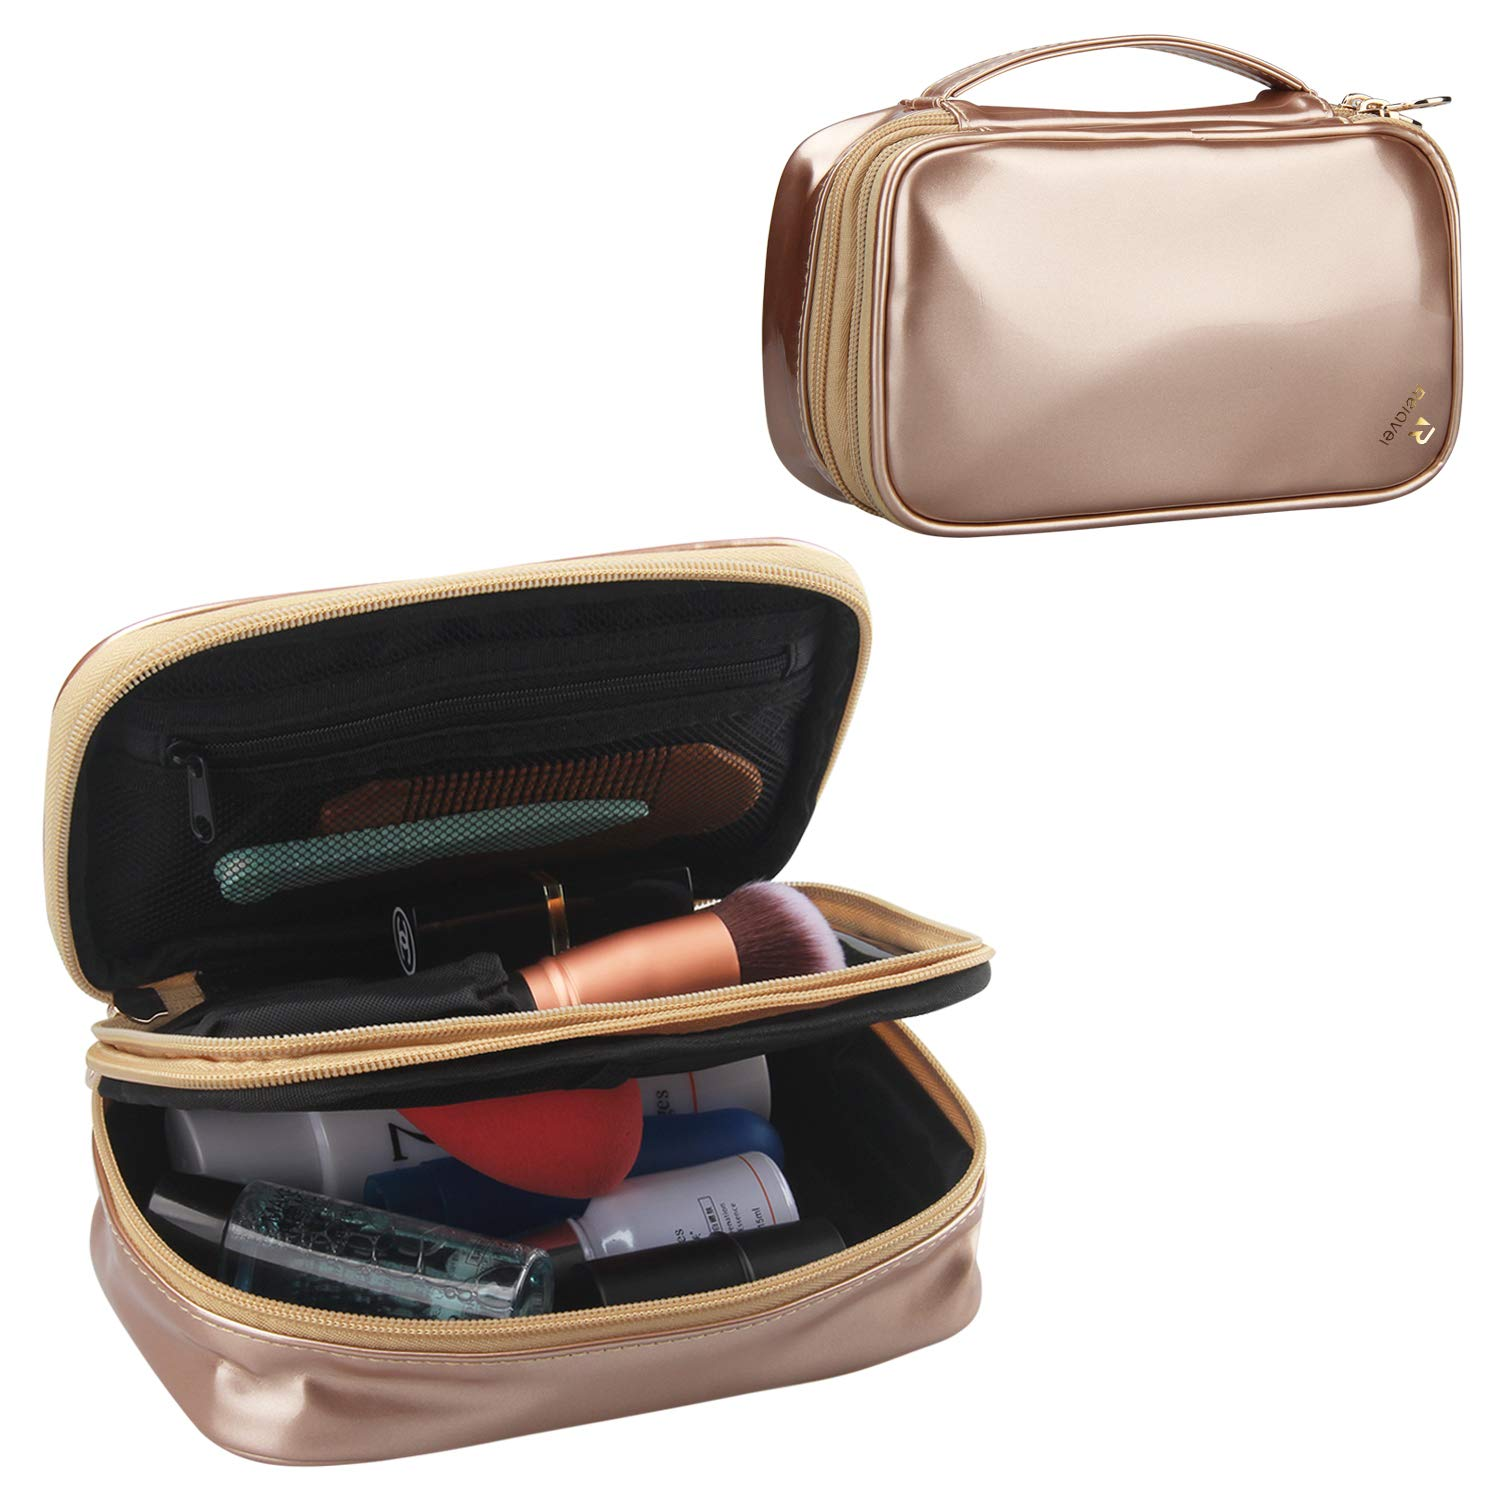 Relavel Travel Cosmetic Bag Small Makeup Bags for Women Portable Cosmetic Case Makeup Brush Organzier (Rose gold)